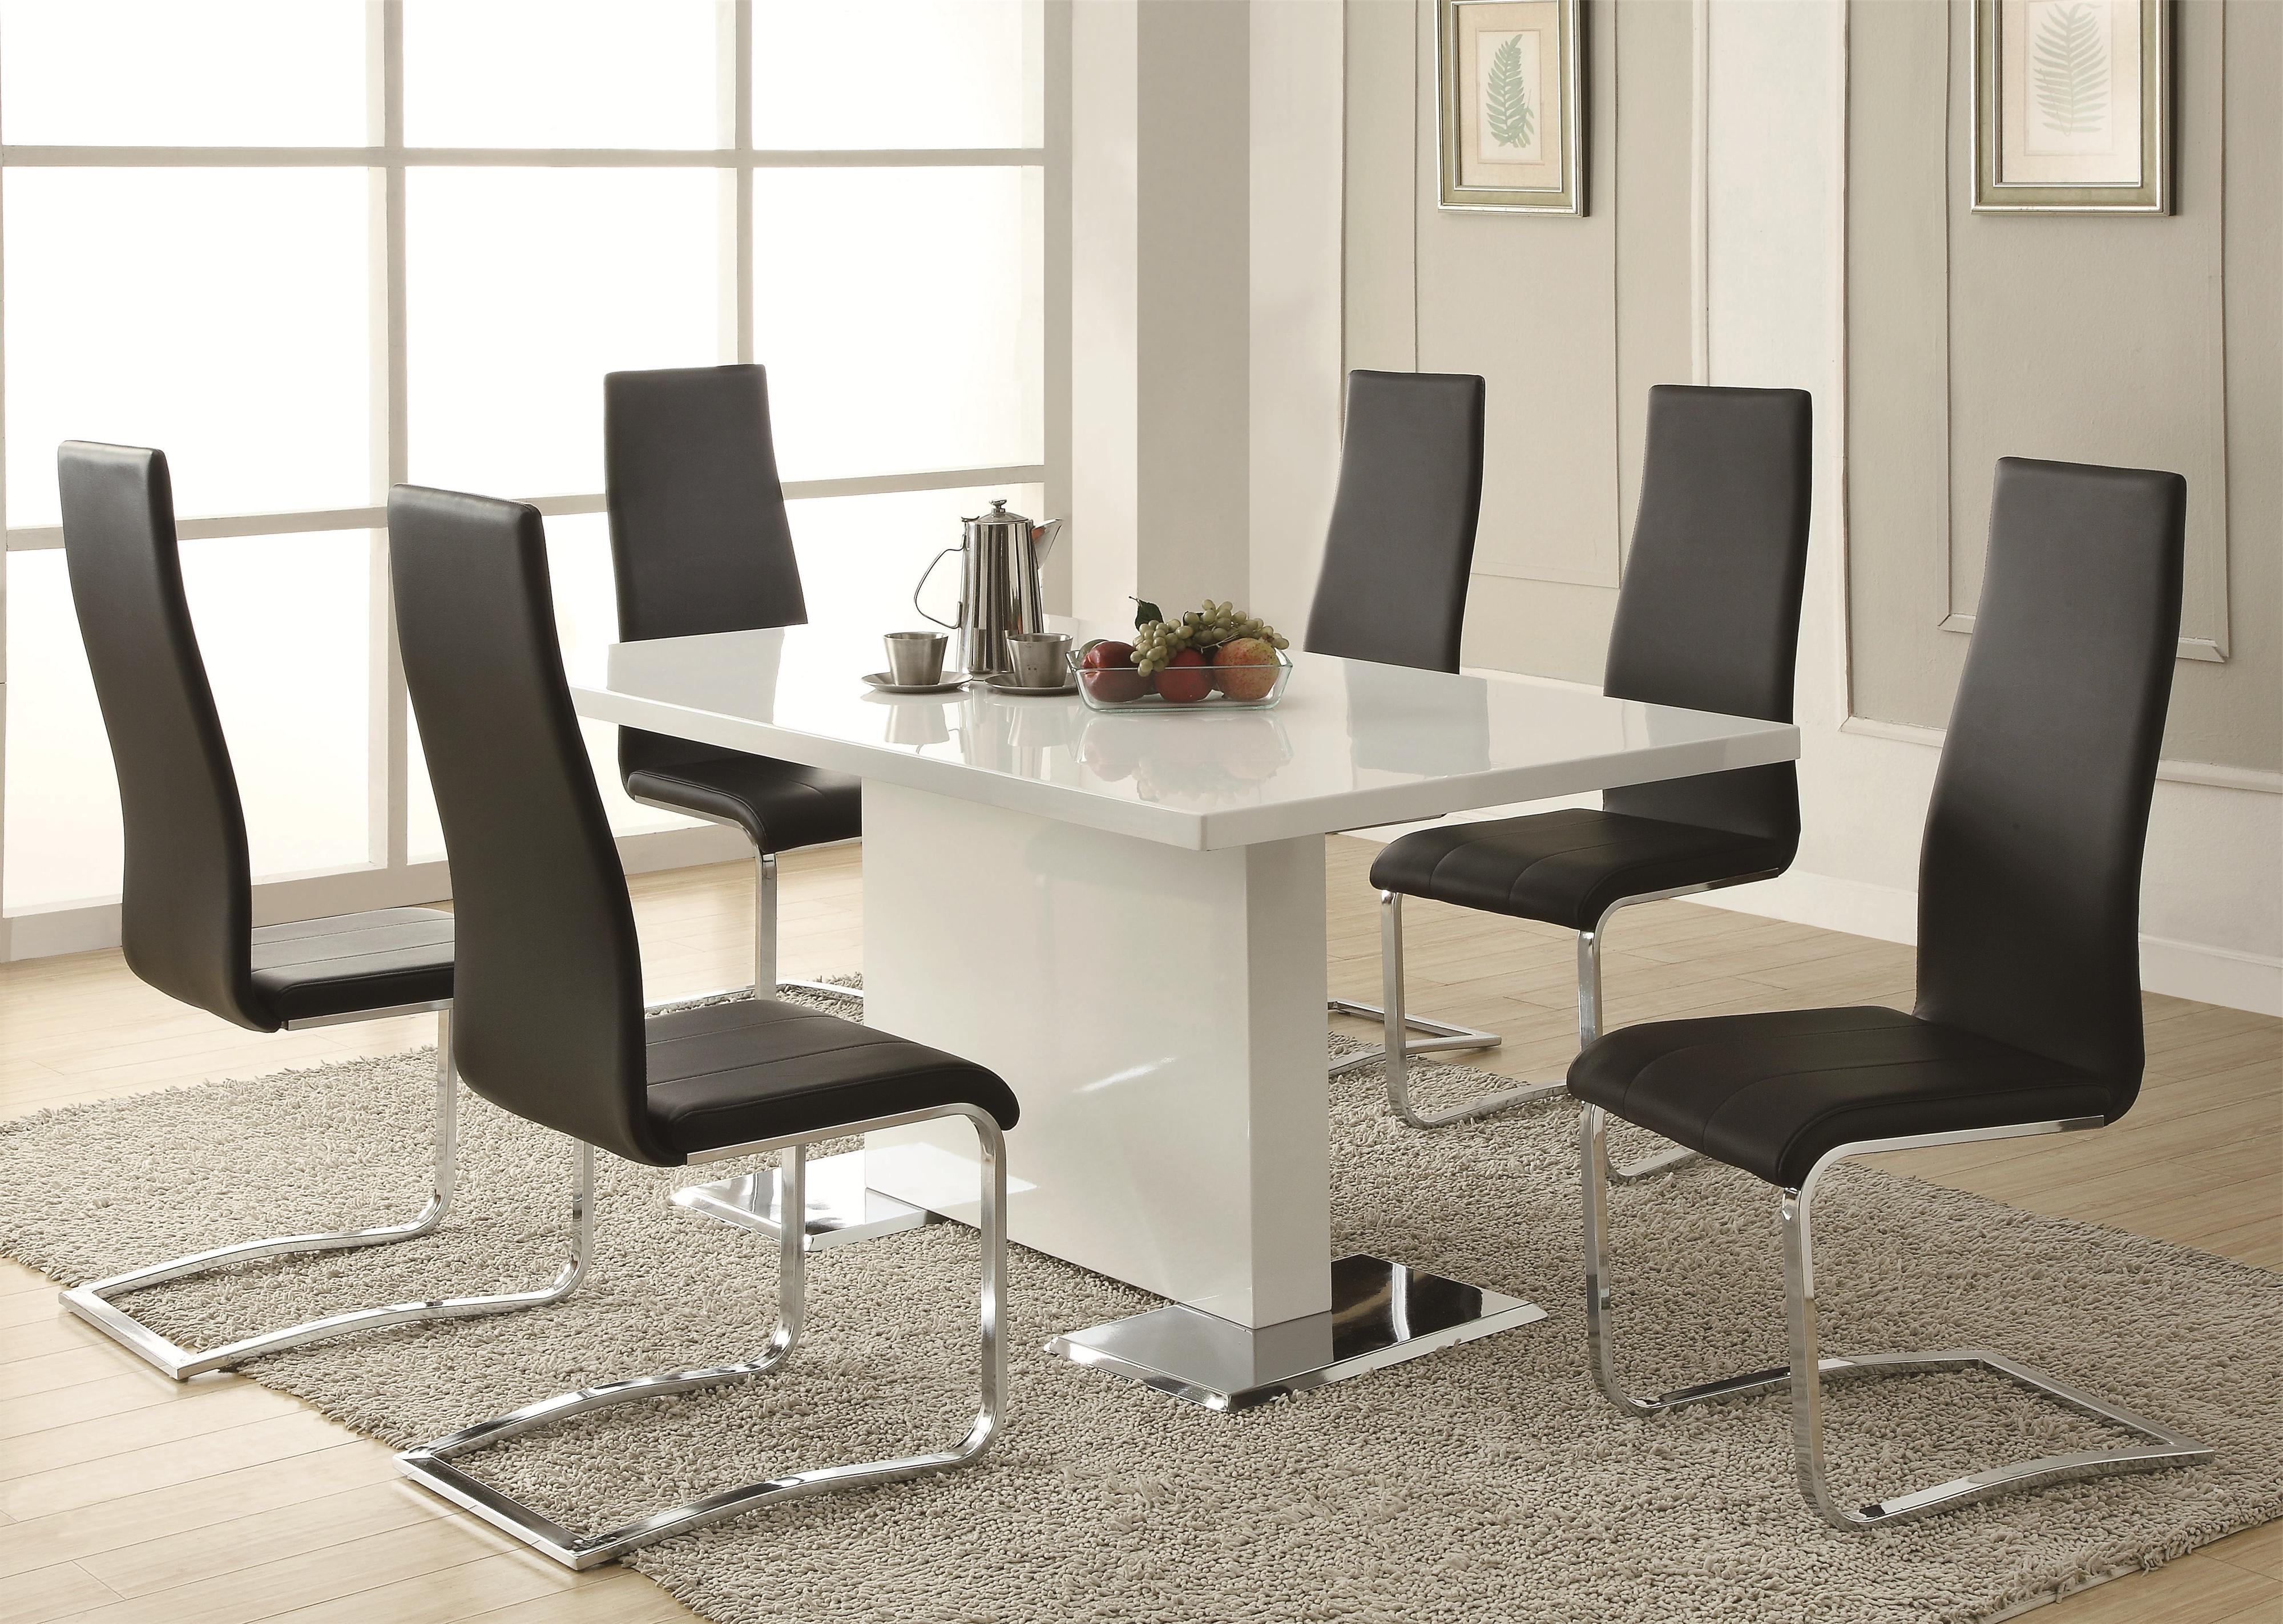 Most Recently Released Coaster Modern Dining 7 Piece White Table & Black Upholstered Chairs Within Modern Dining Table And Chairs (View 19 of 25)